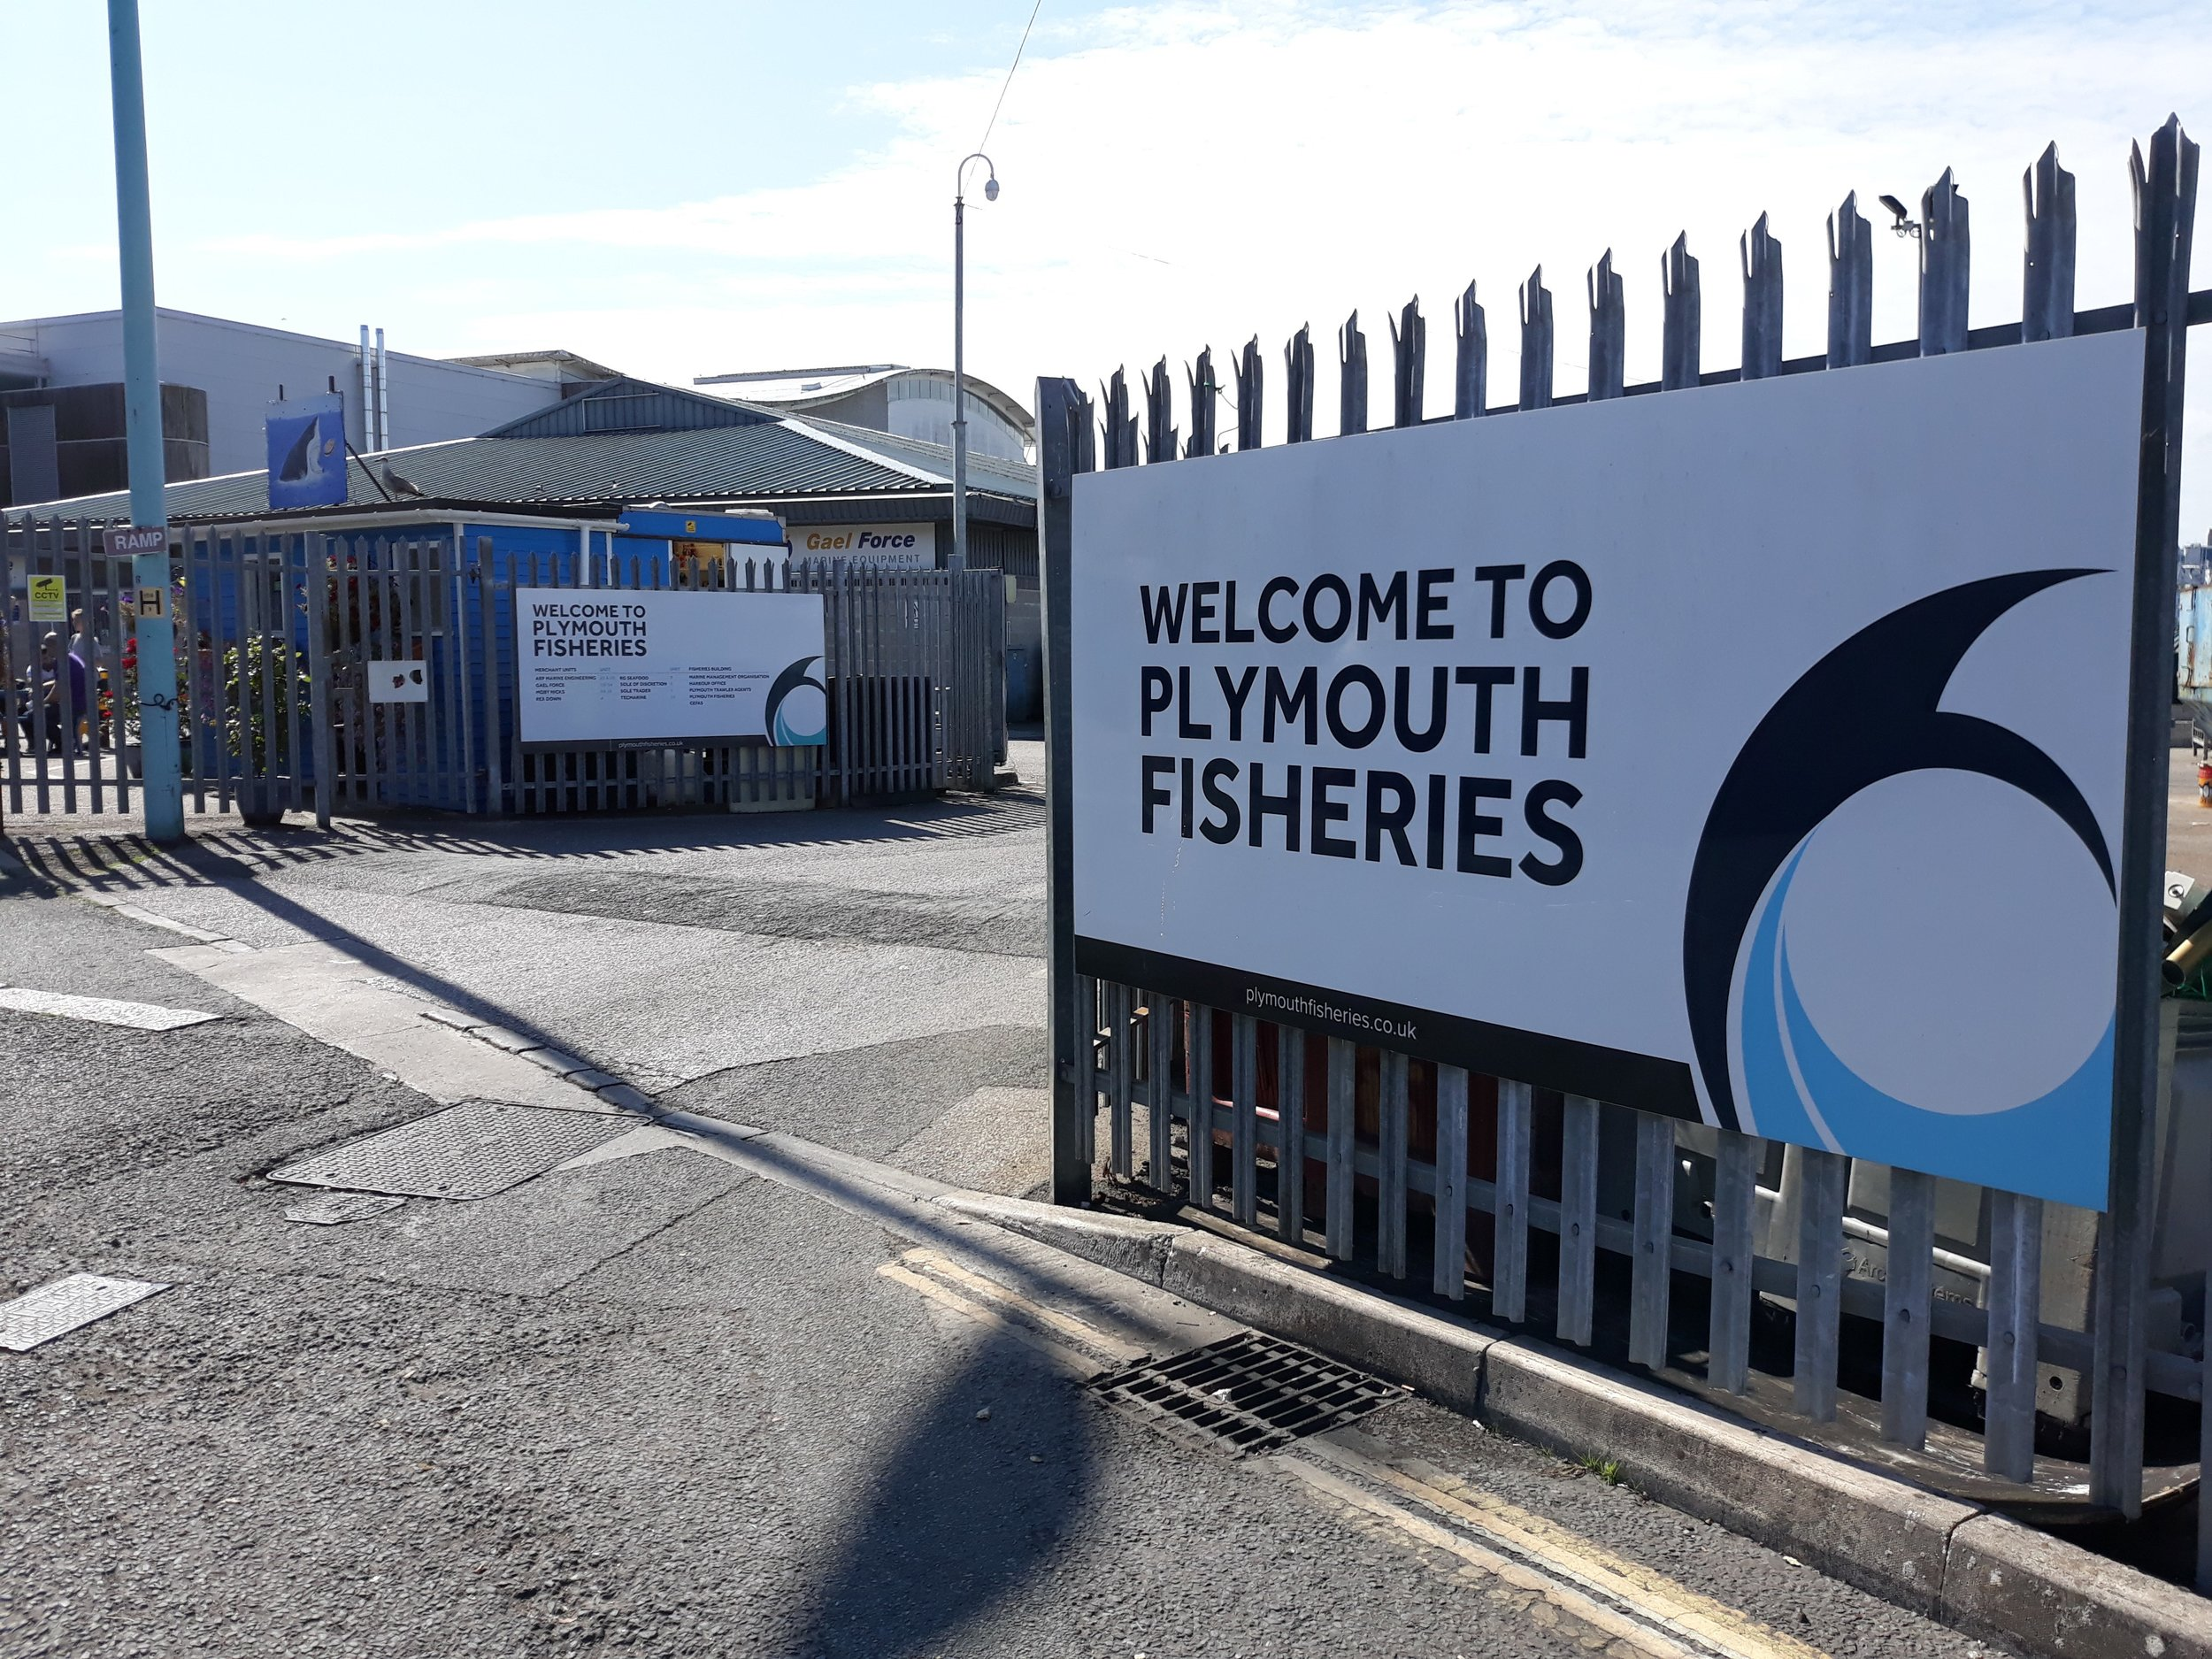 Plymouth Fisheries.